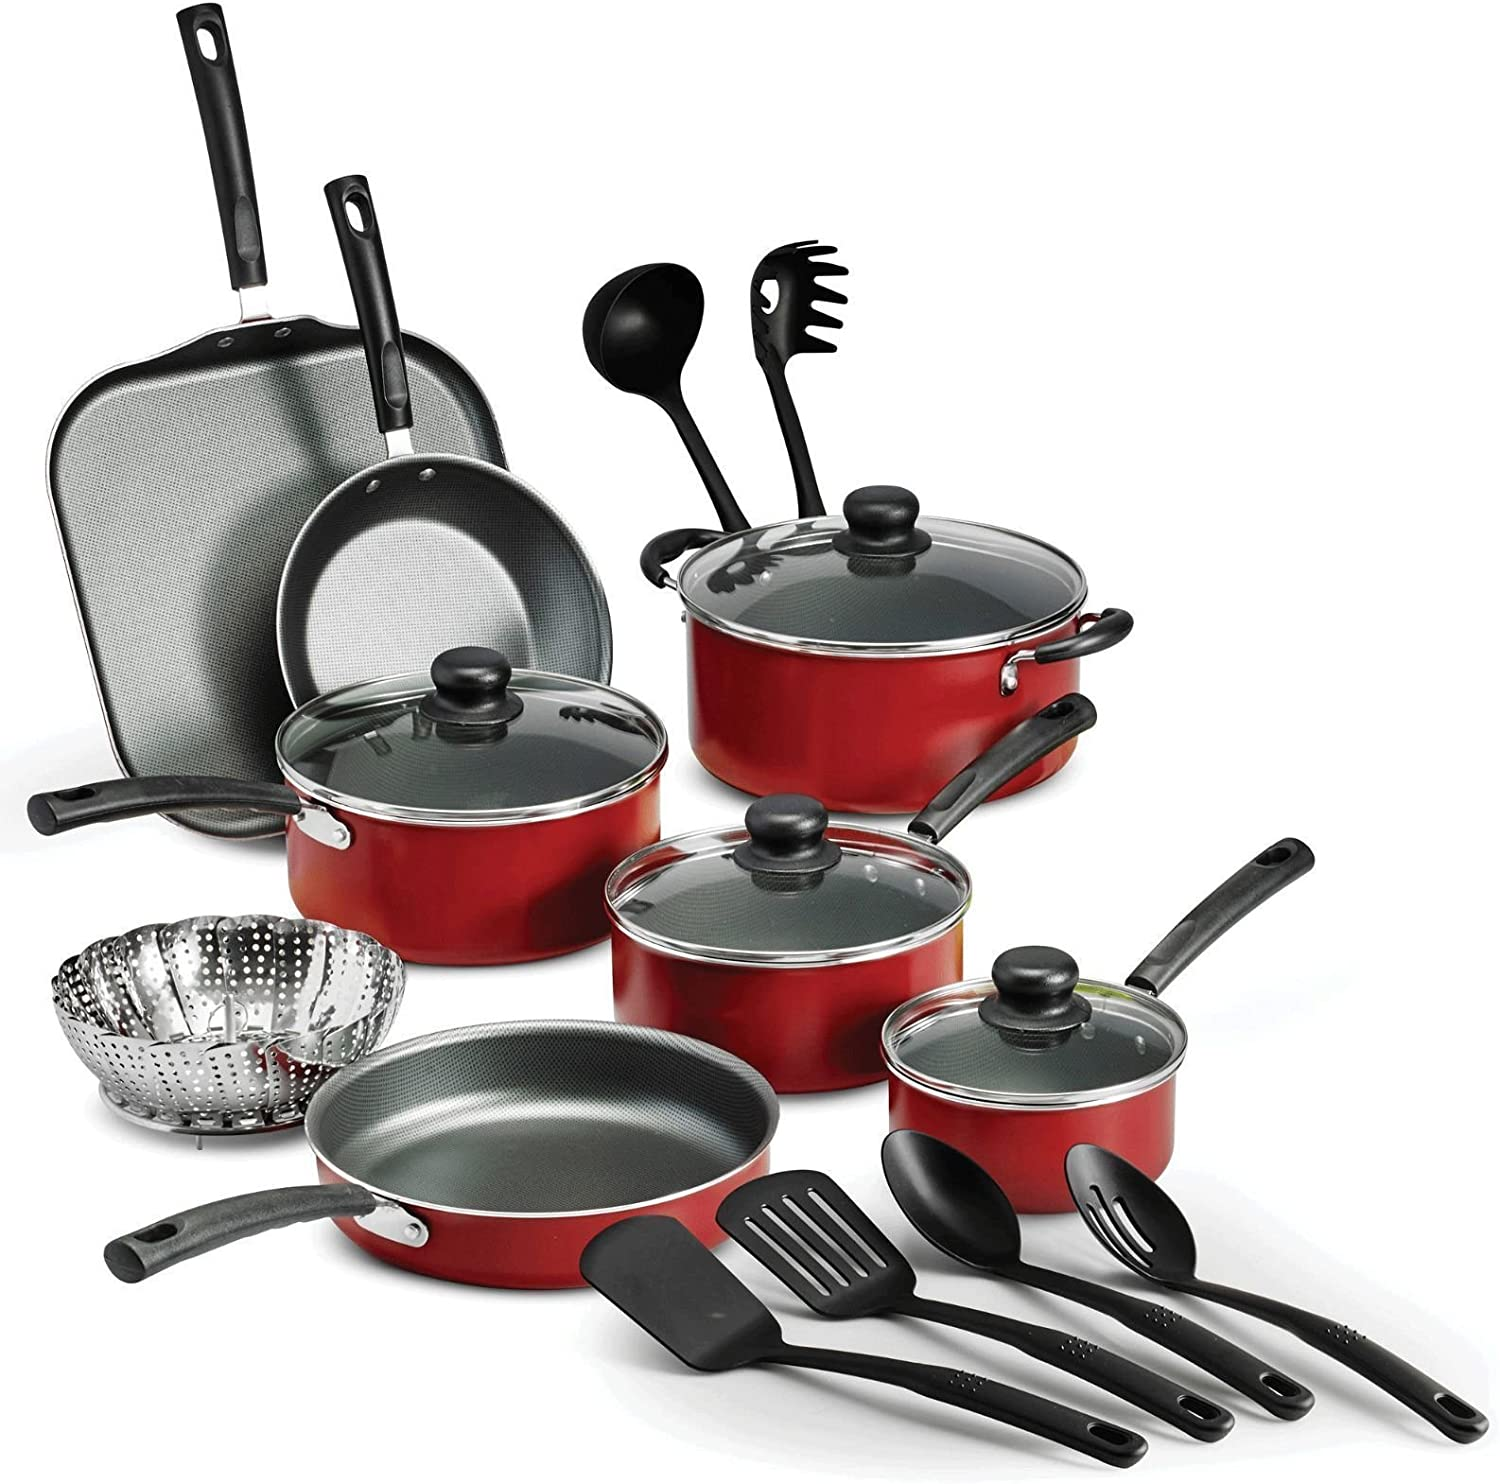 Amazon.com: LEGENDARY-YES 18 Piece Nonstick Pots & Pans Cookware Set  Kitchen Kitchenware Cooking NEW (RED): Kitchen & Dining